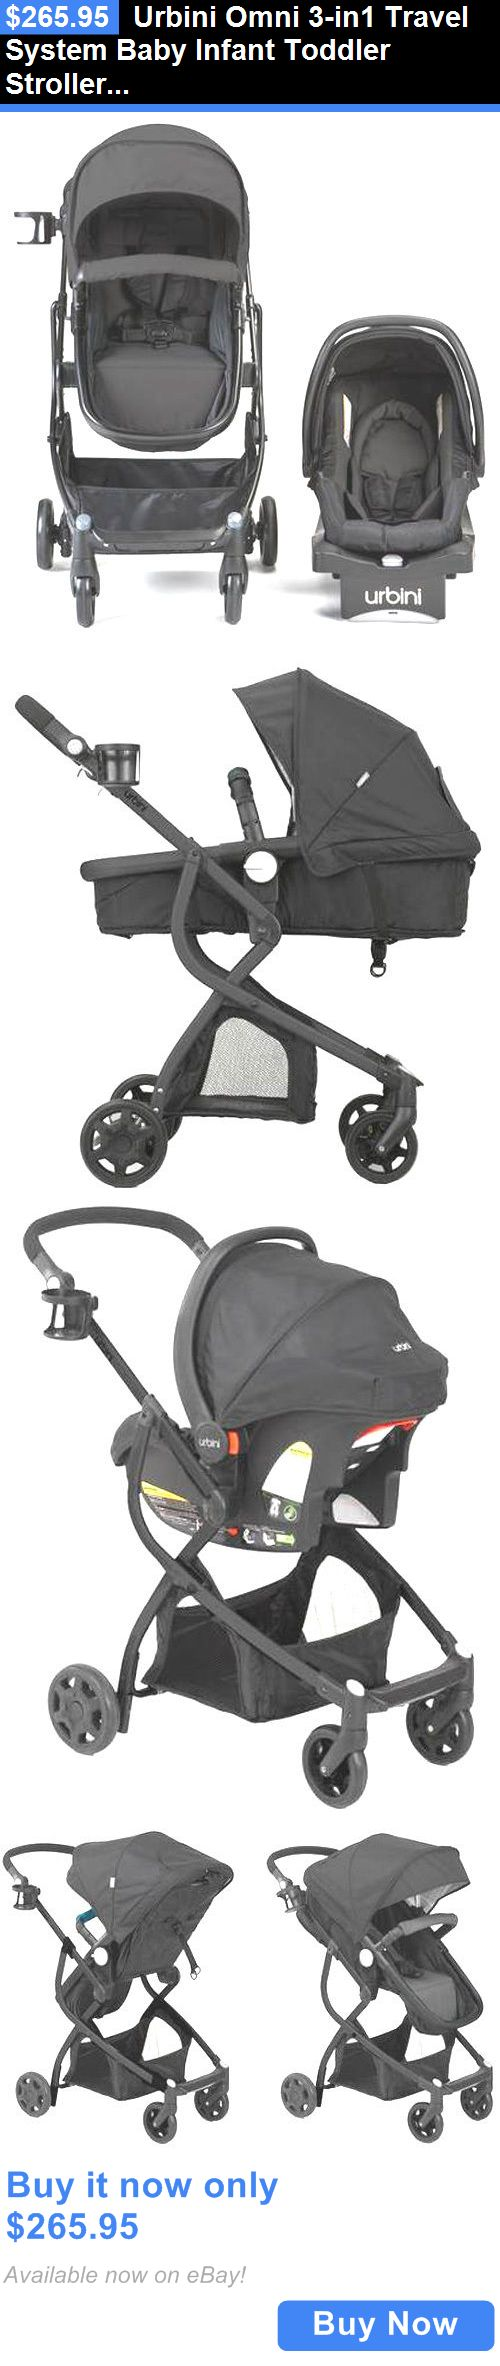 baby and kid stuff: Urbini Omni 3-In1 Travel System Baby Infant Toddler Stroller Car Seat Pram Black BUY IT NOW ONLY: $265.95